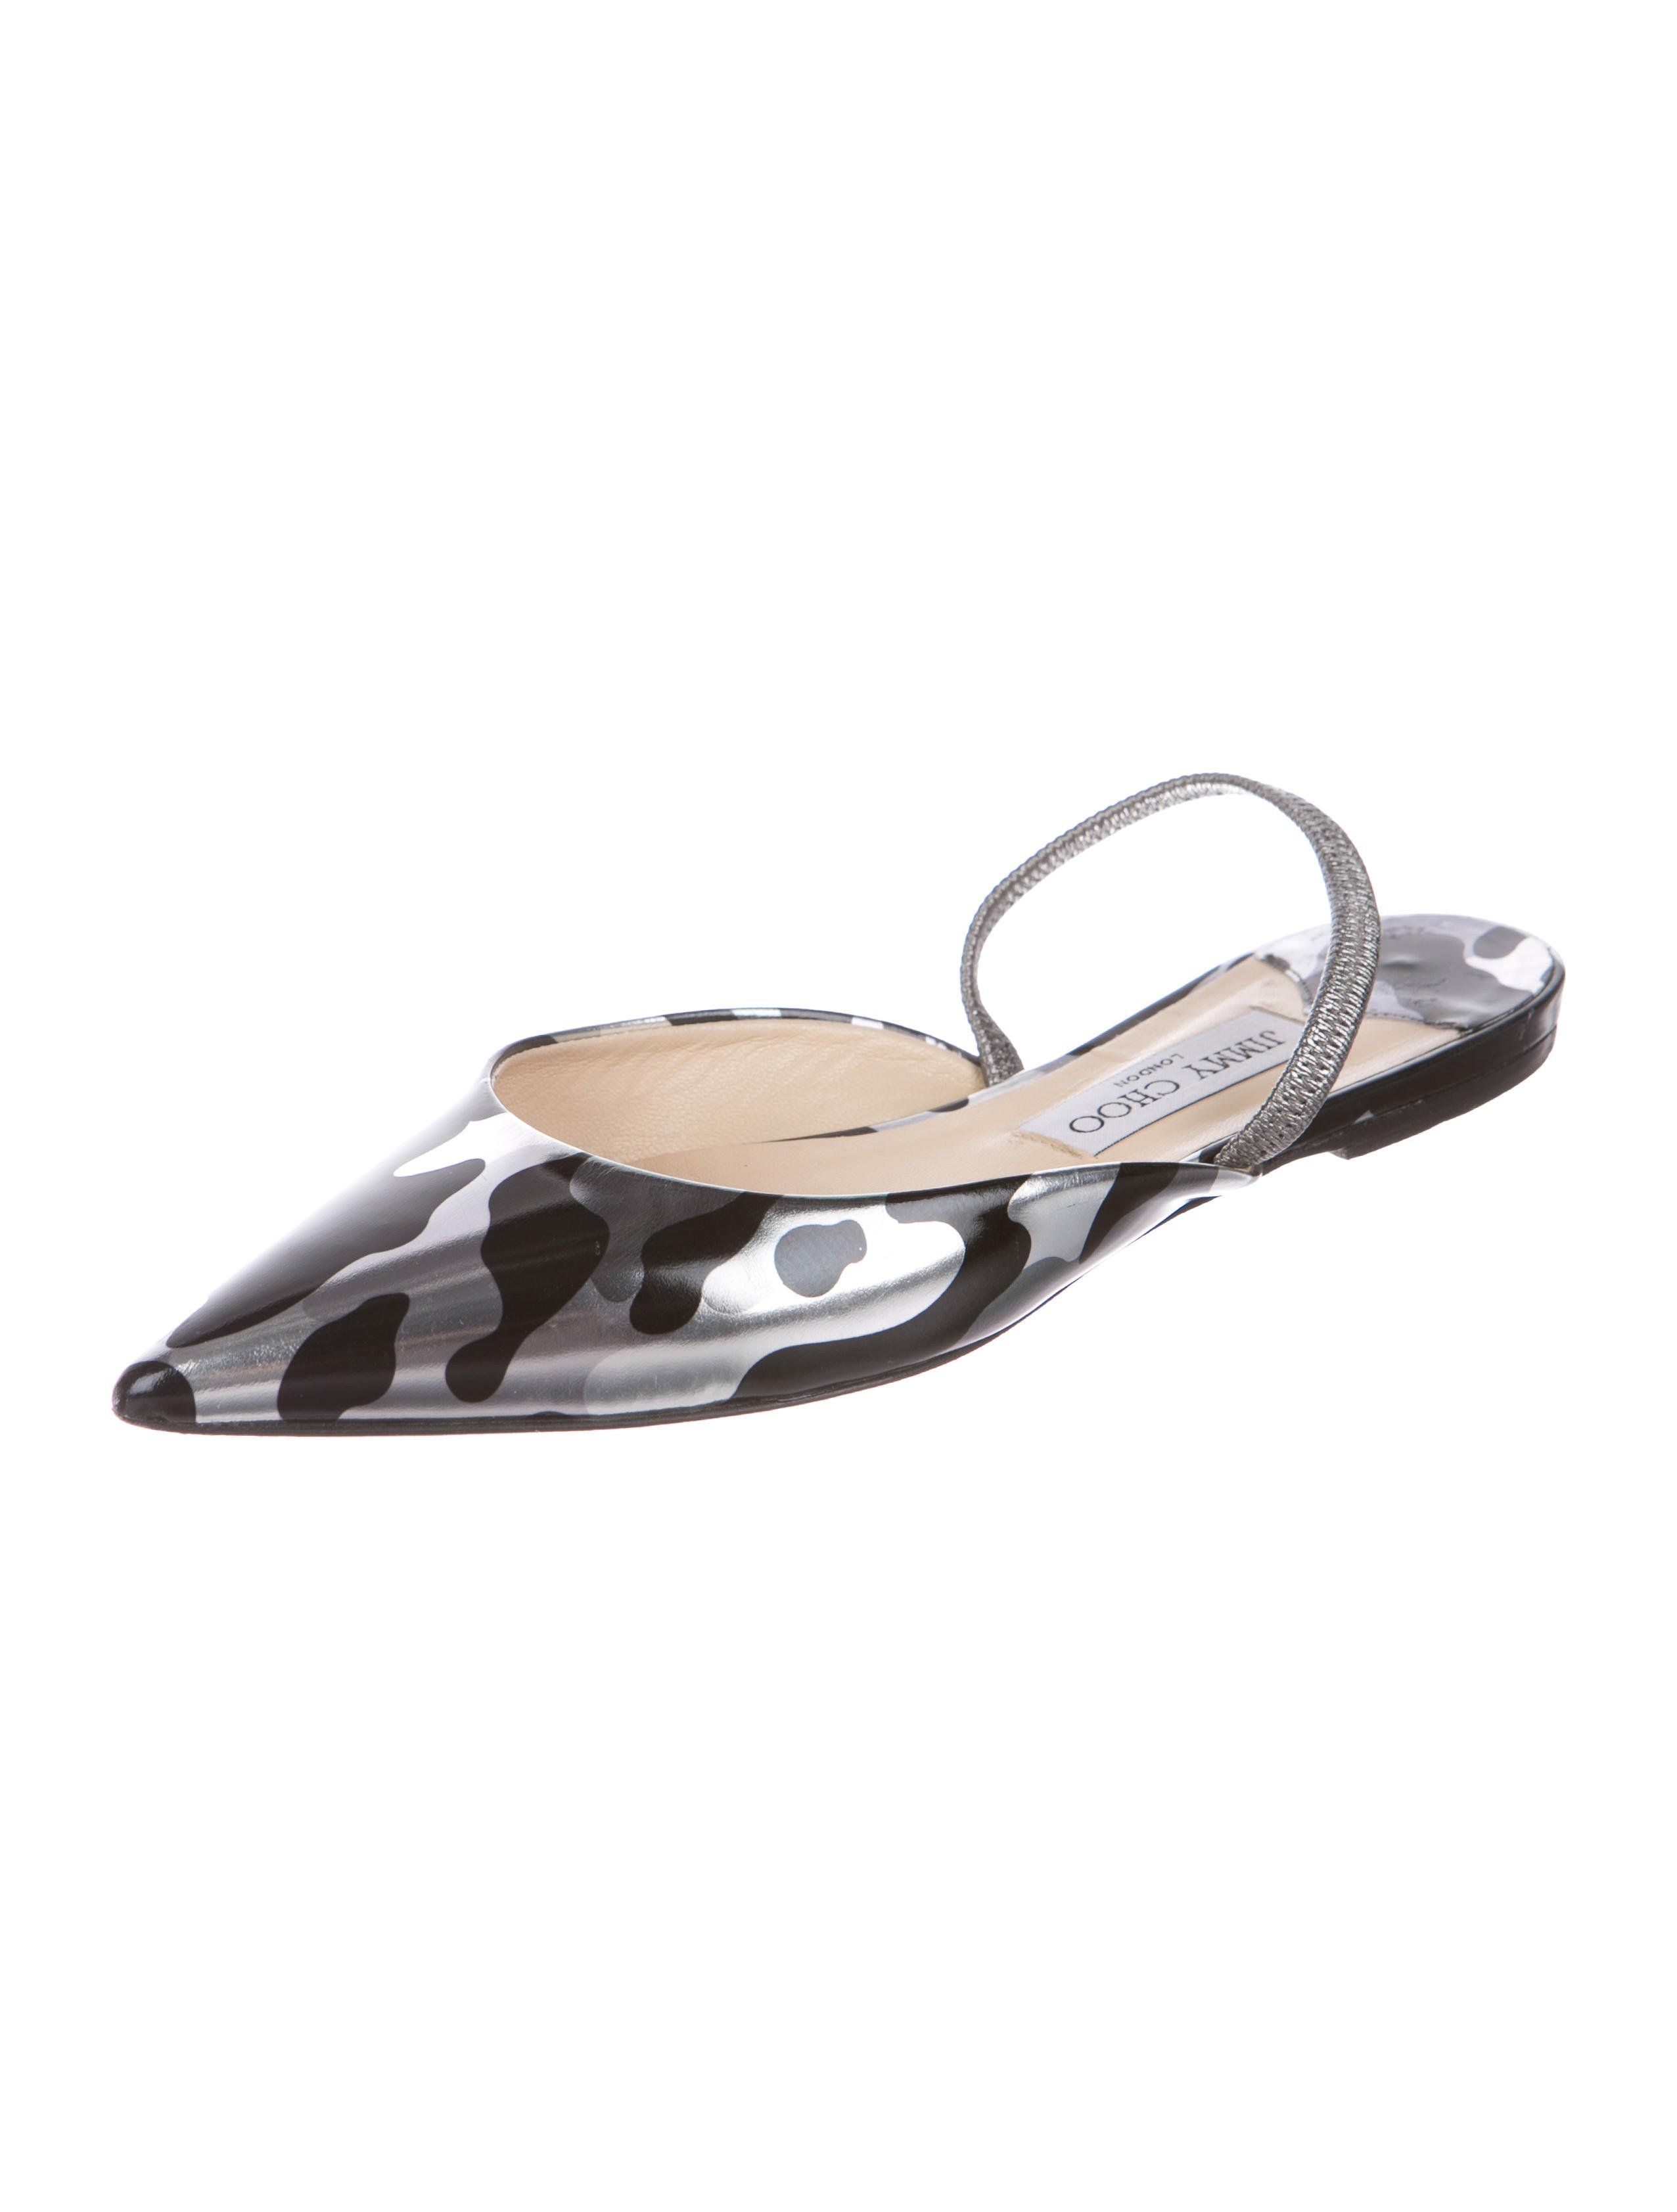 87476eb3e Silver and black leather Jimmy Choo pointed-toe slingback flats with  camouflage print throughout and stacked heels.Designer Fit  This designer  runs a half s